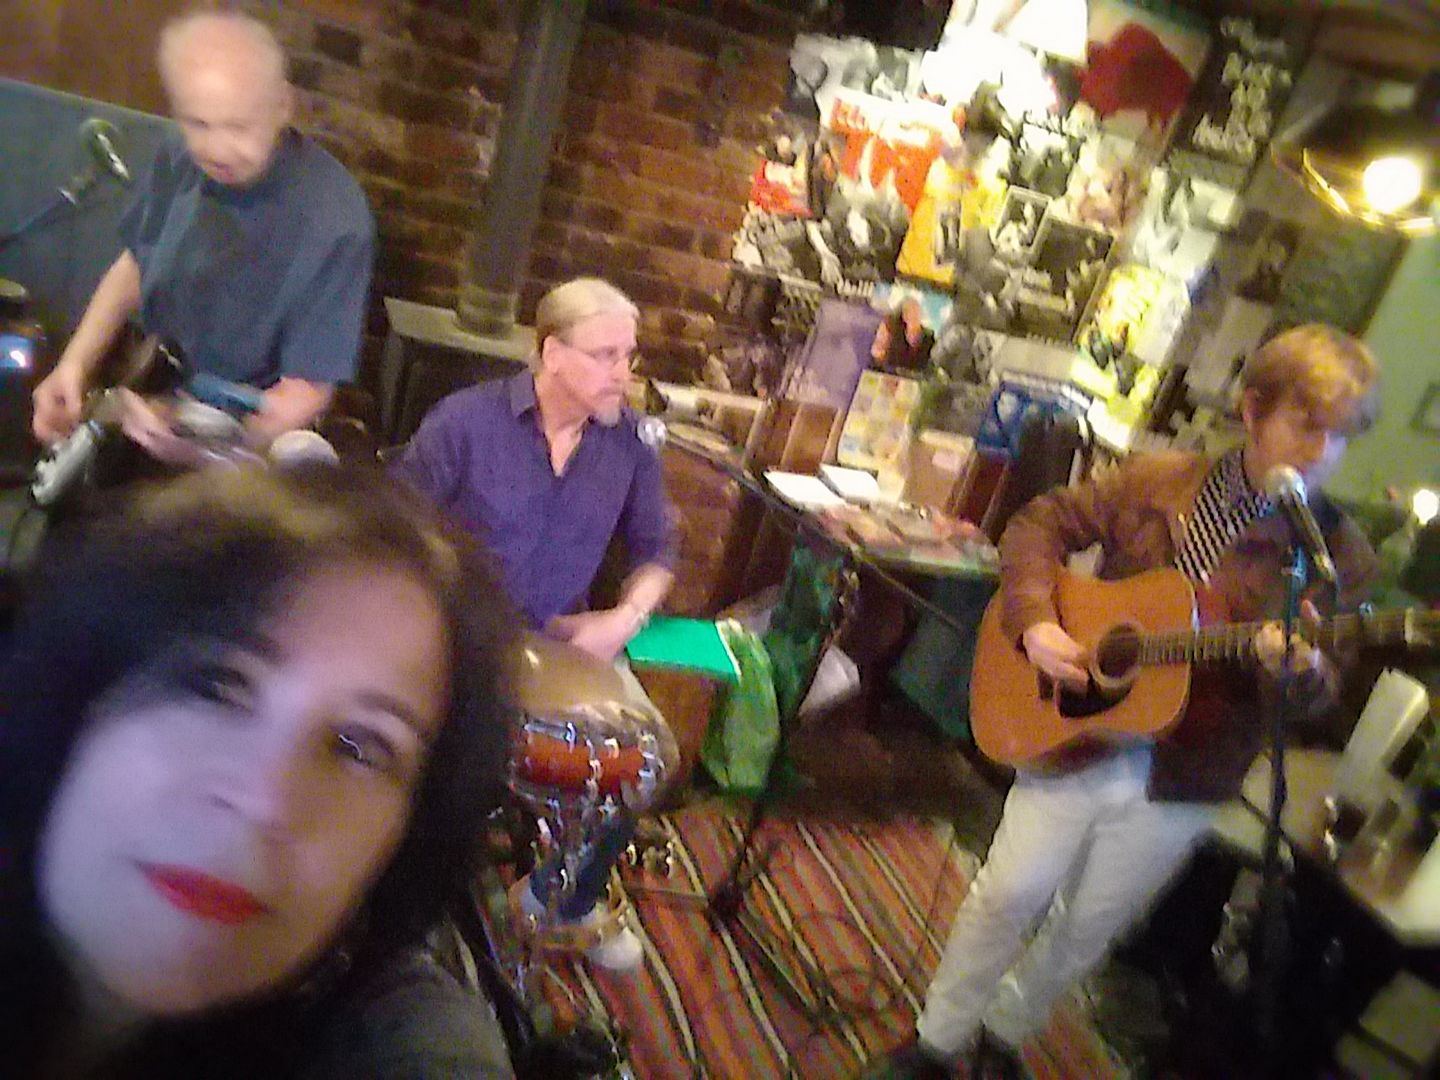 Celsi, Bragg & Maitland with Tony Poole - The Greys, Brighton UK, August 2017